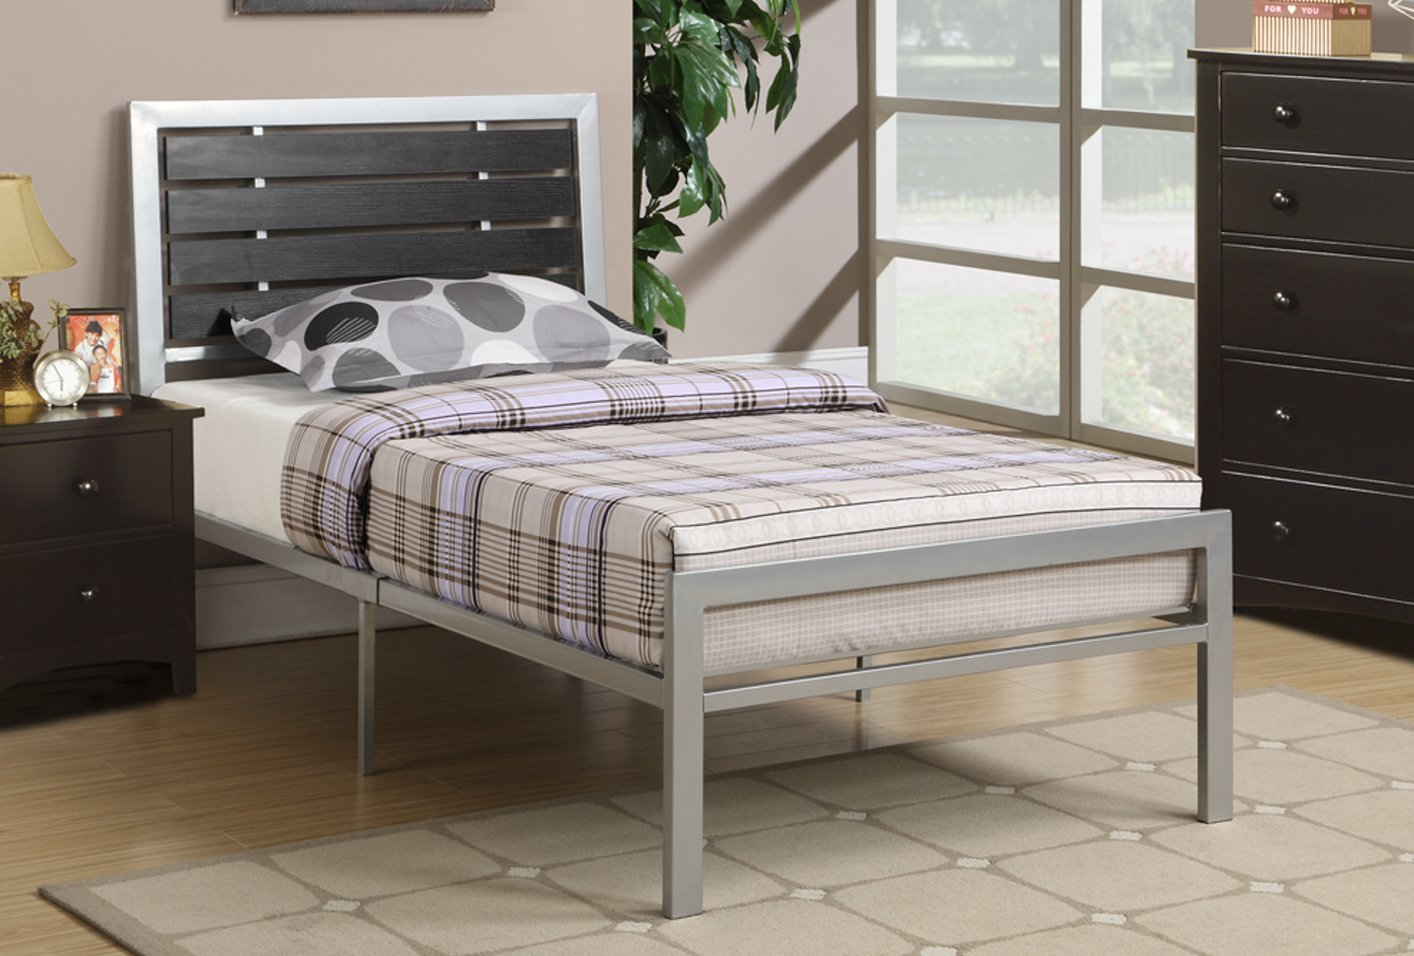 poundex f9412t black twin size metal bed stealasofa